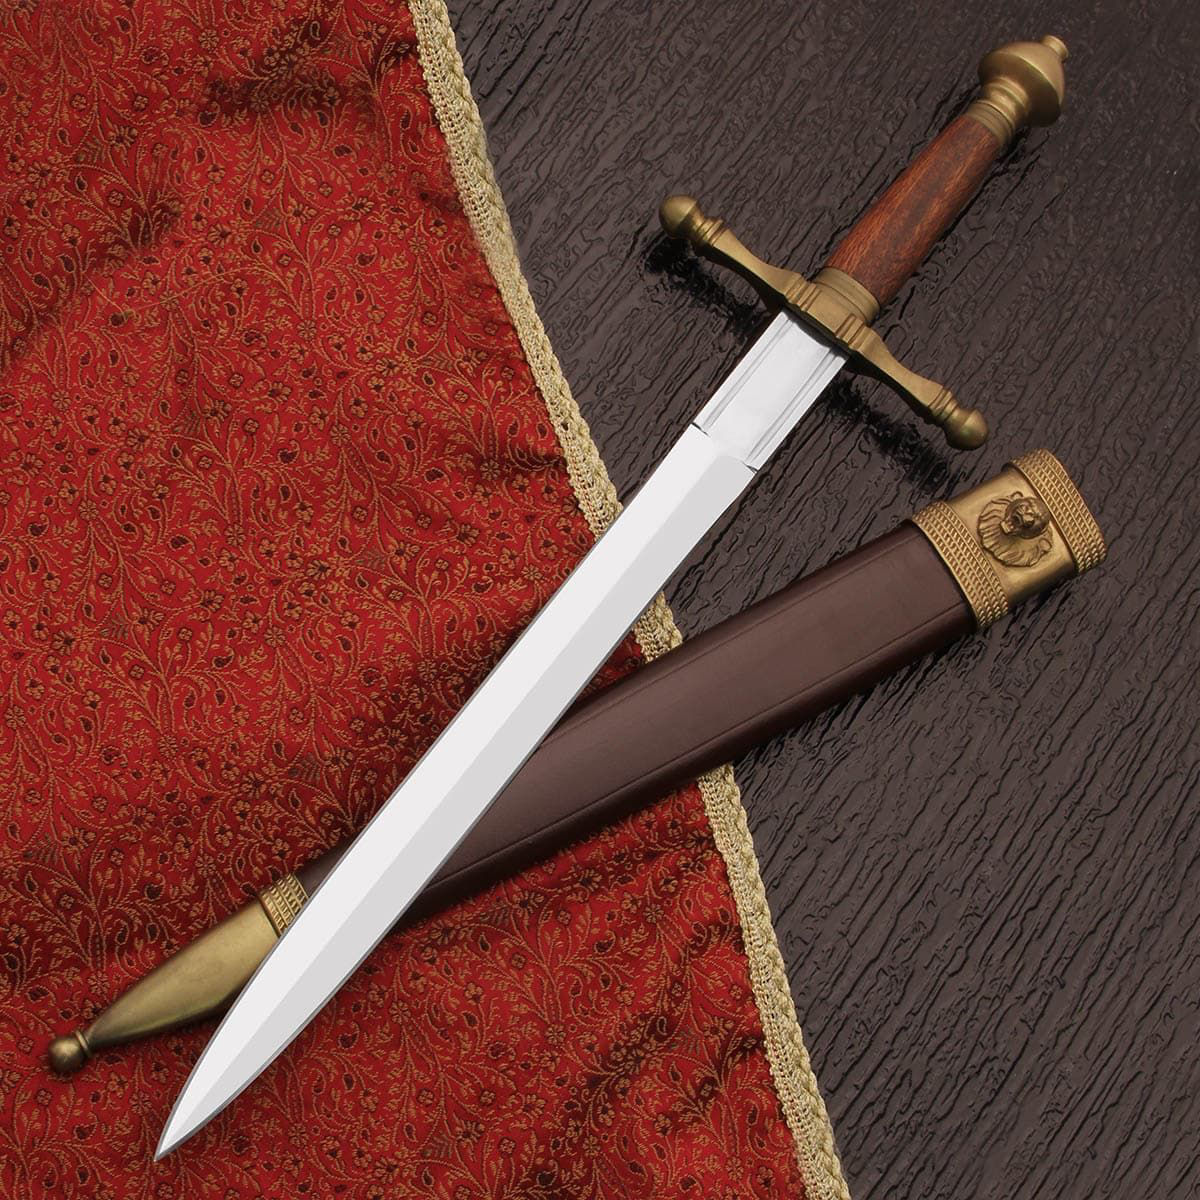 Bramham Moor Medieval Dagger by Windlass has high carbon steel blade, matte brass fittings and leather scabbard with lion's head